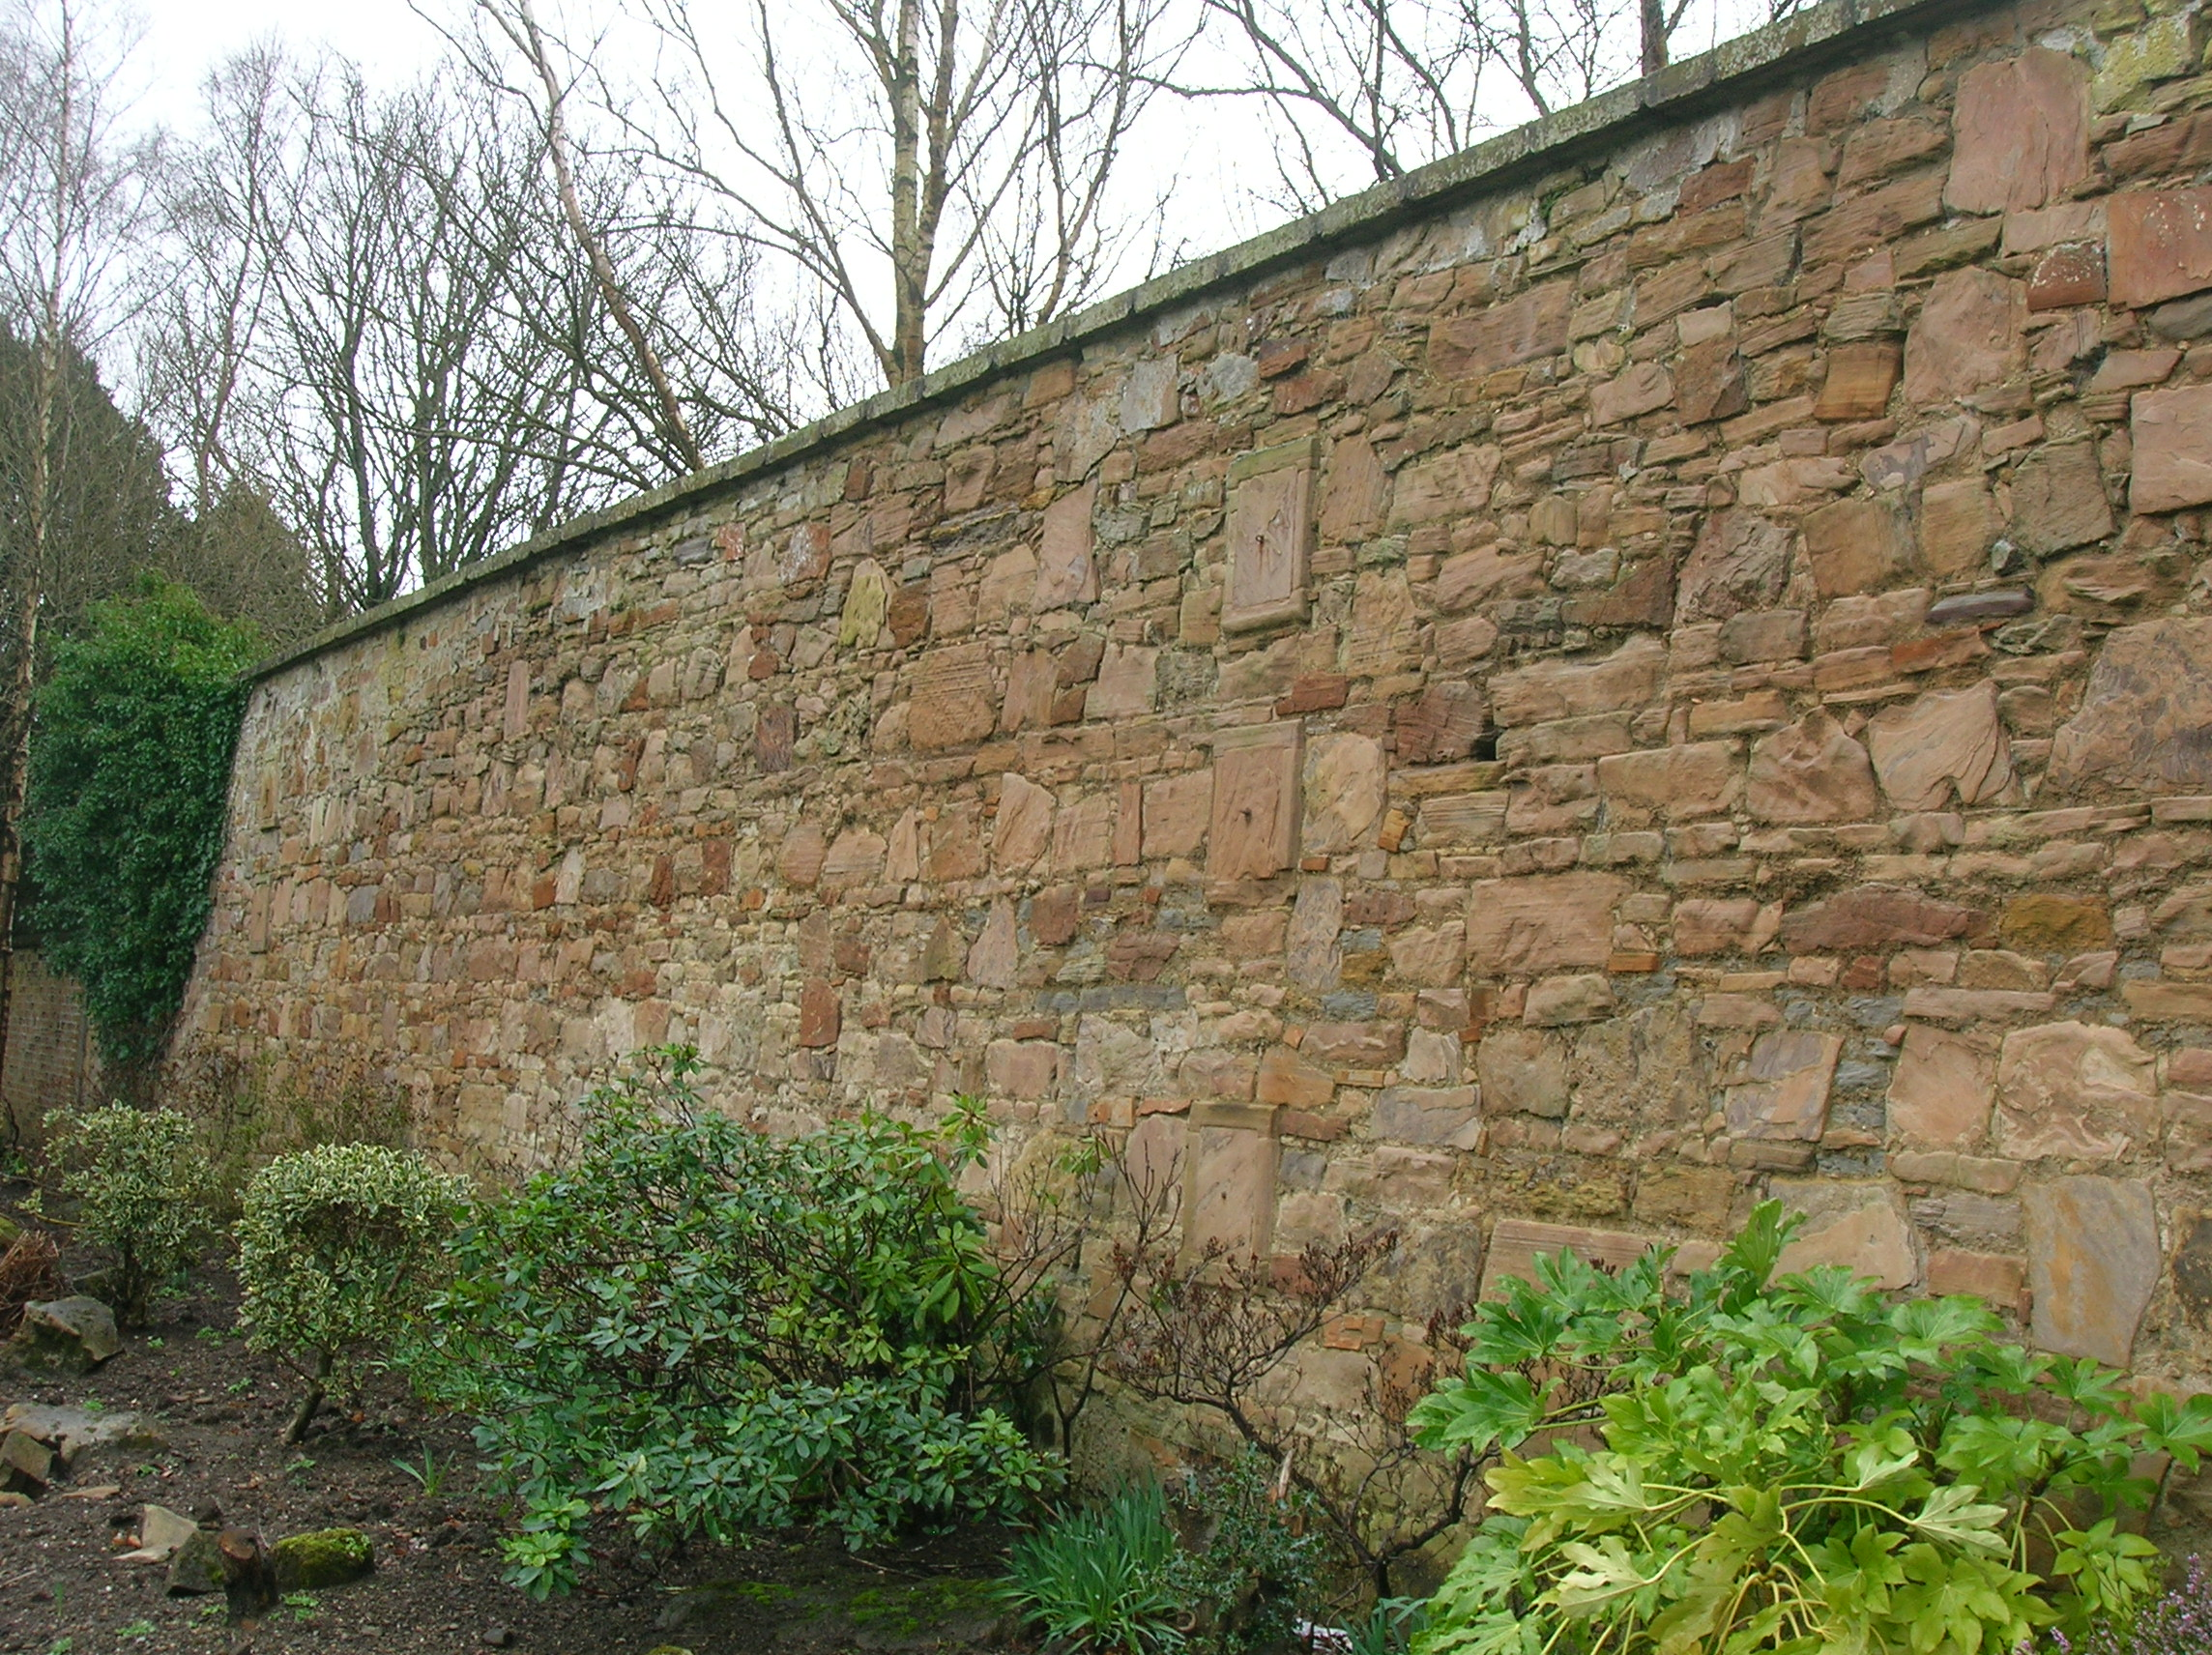 fileeglinton walled garden walljpg - Garden Wall